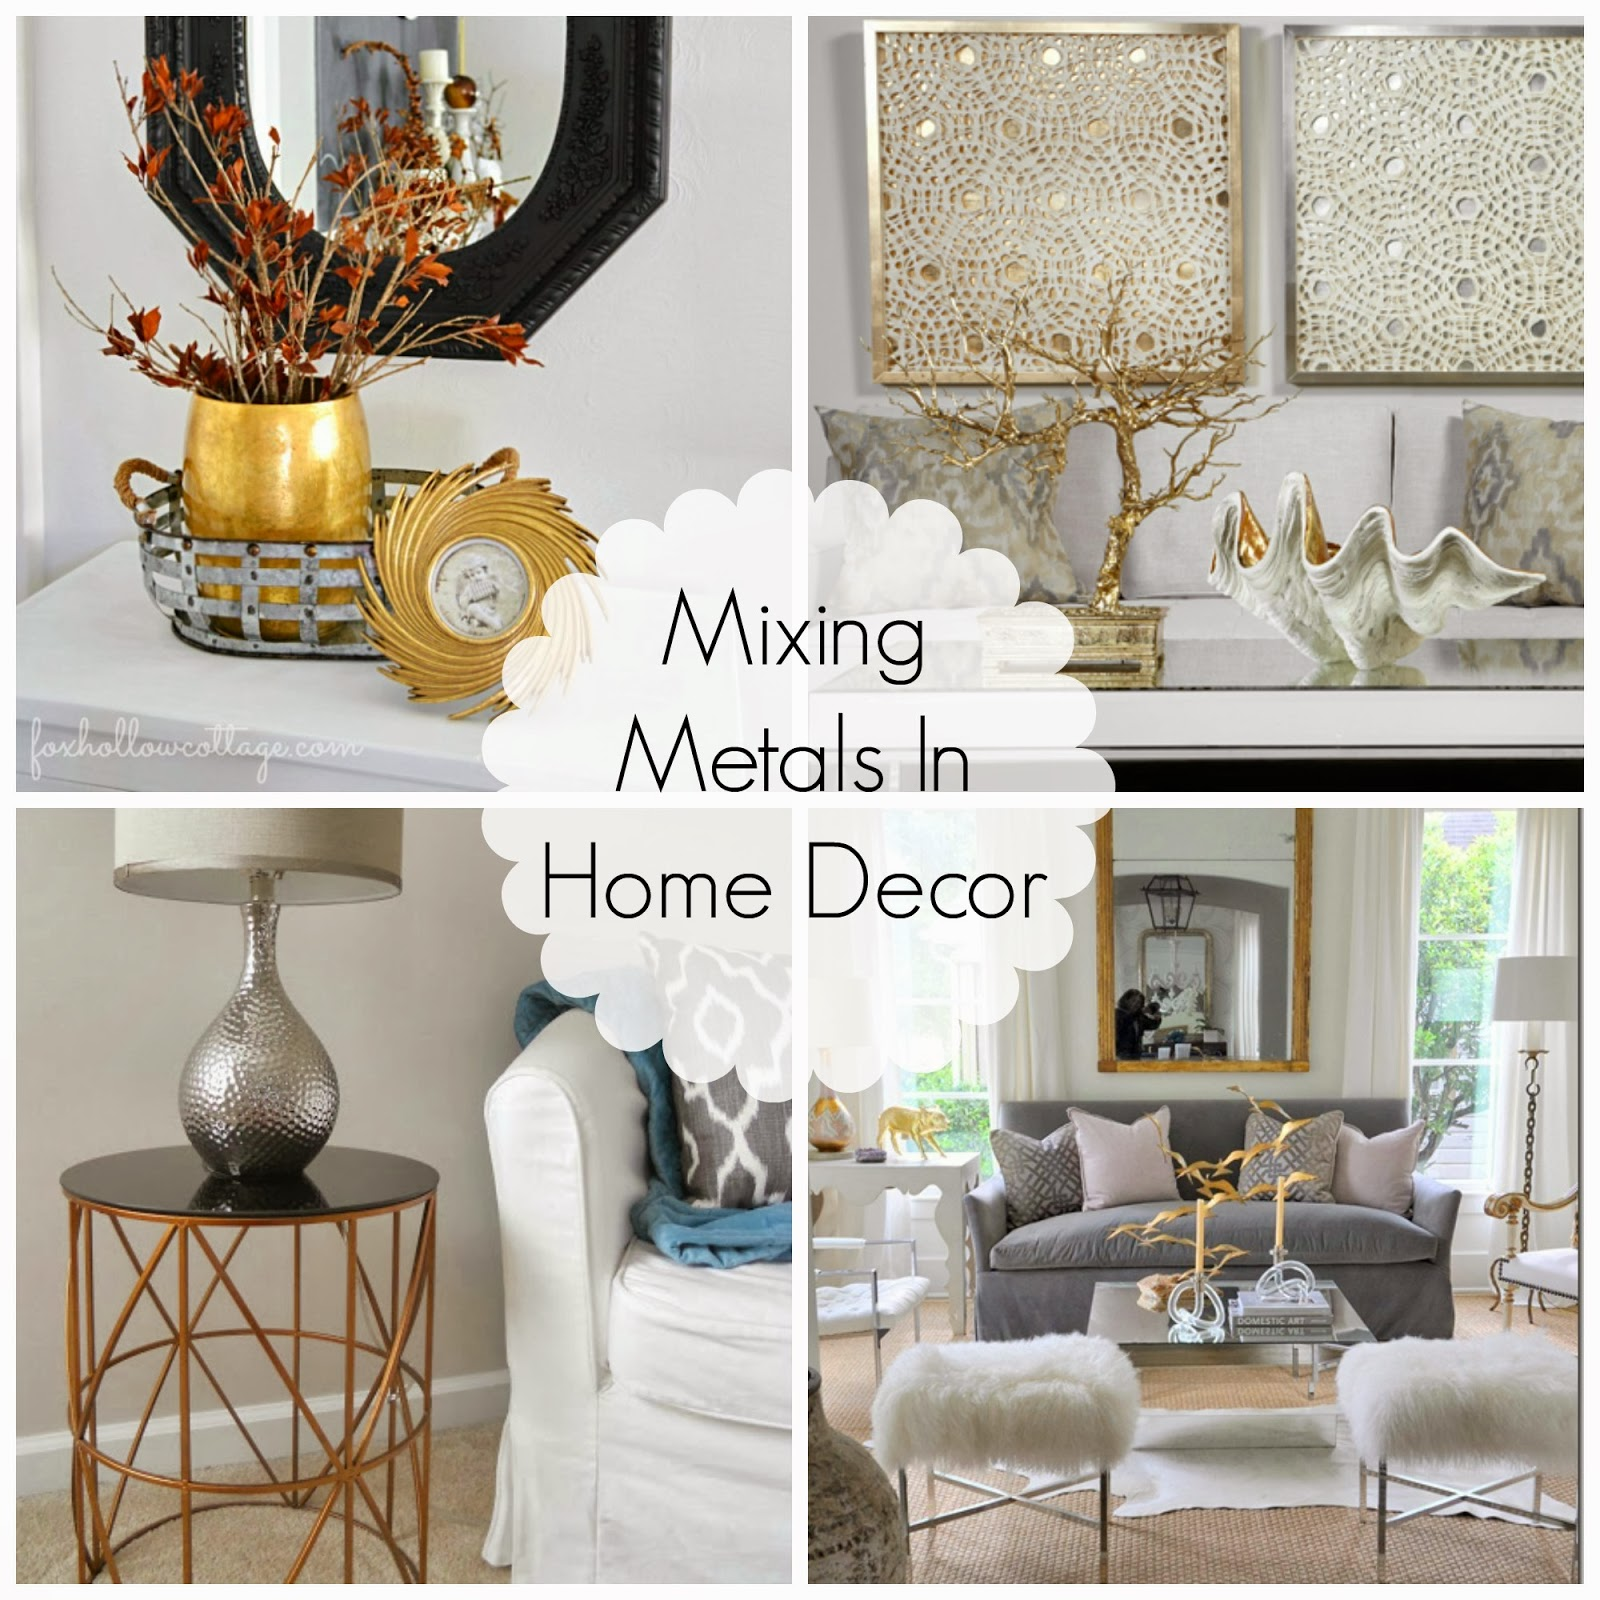 Decorating cents mixing metals in home decor for Home decor accents